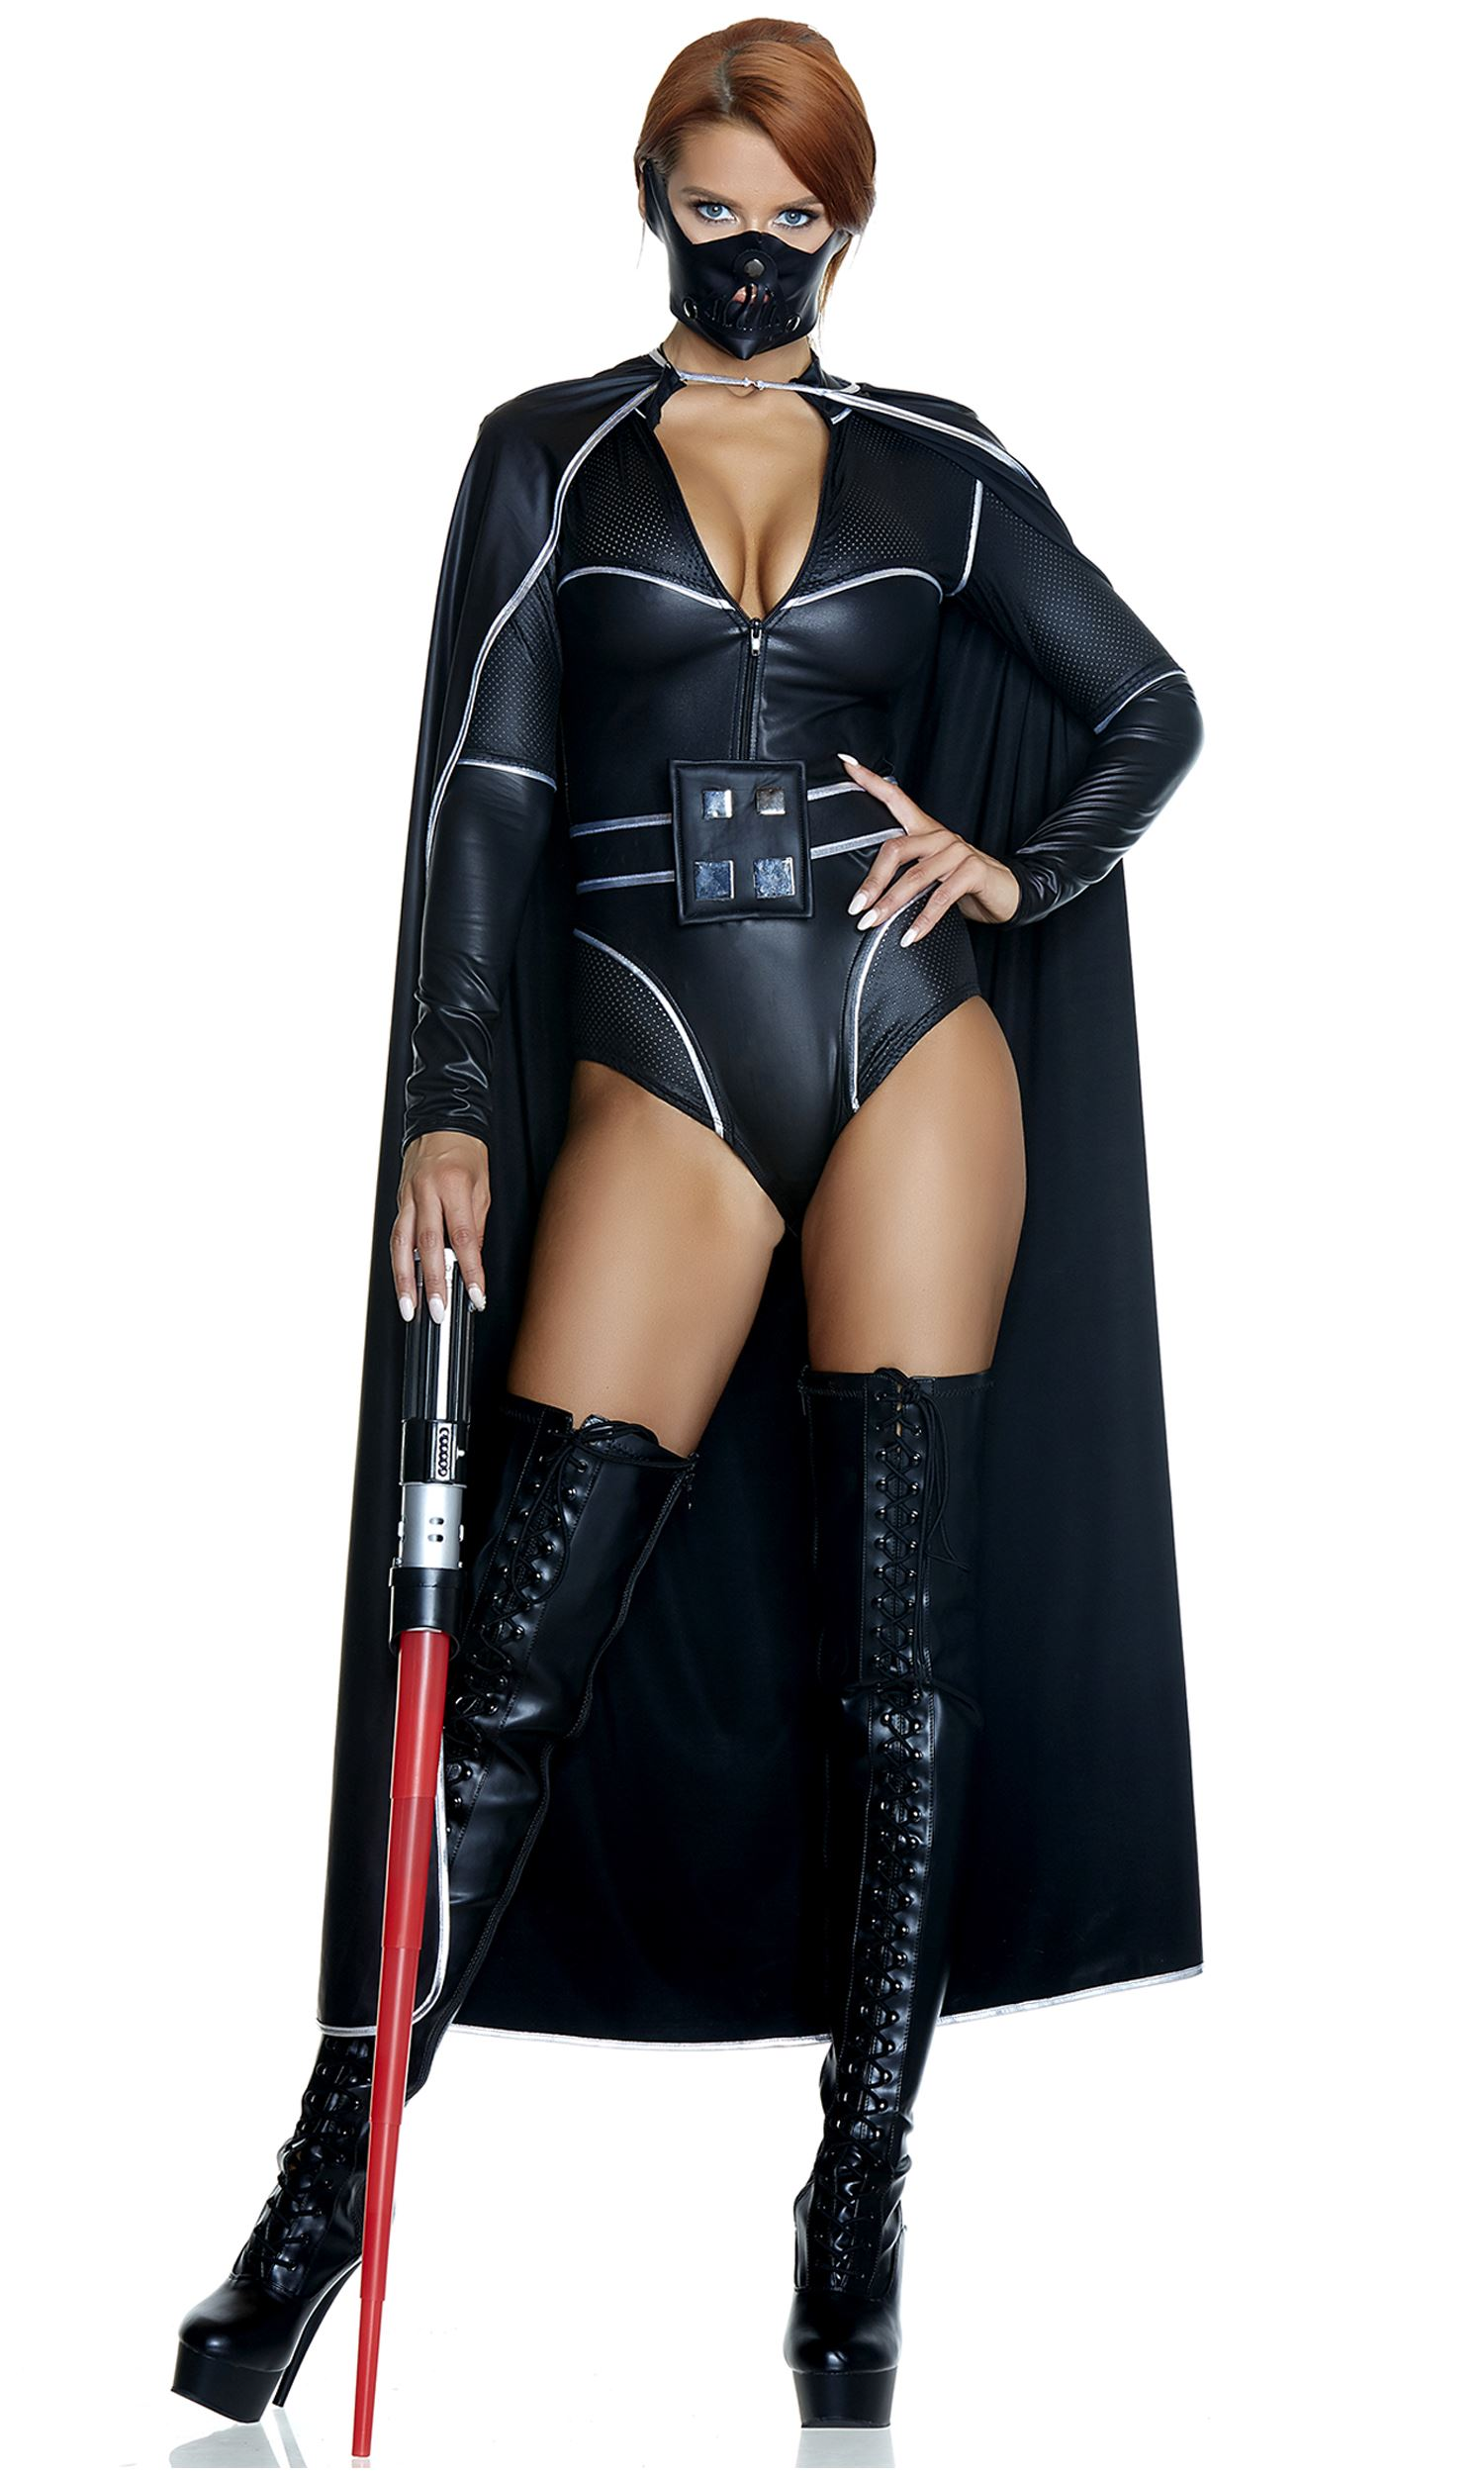 adult forceful movie character woman costume | $93.99 | the costume land